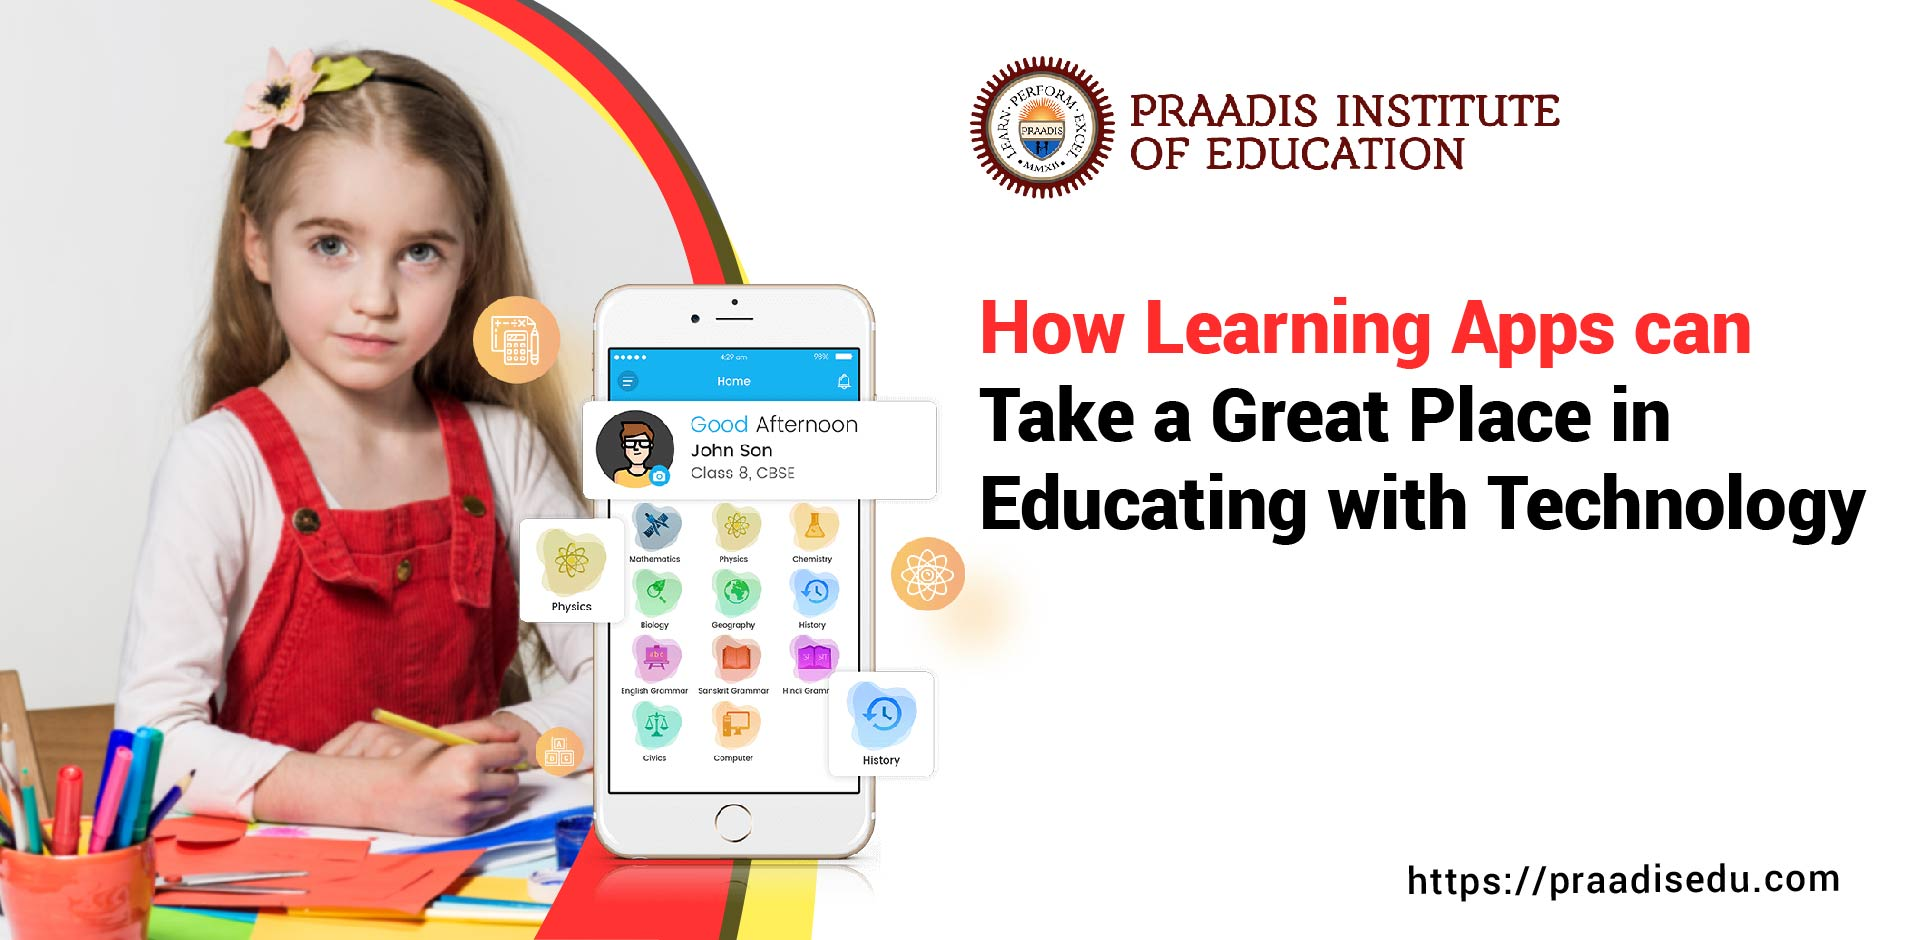 How Learning Apps can Take a Great Place in Educating with Technology?